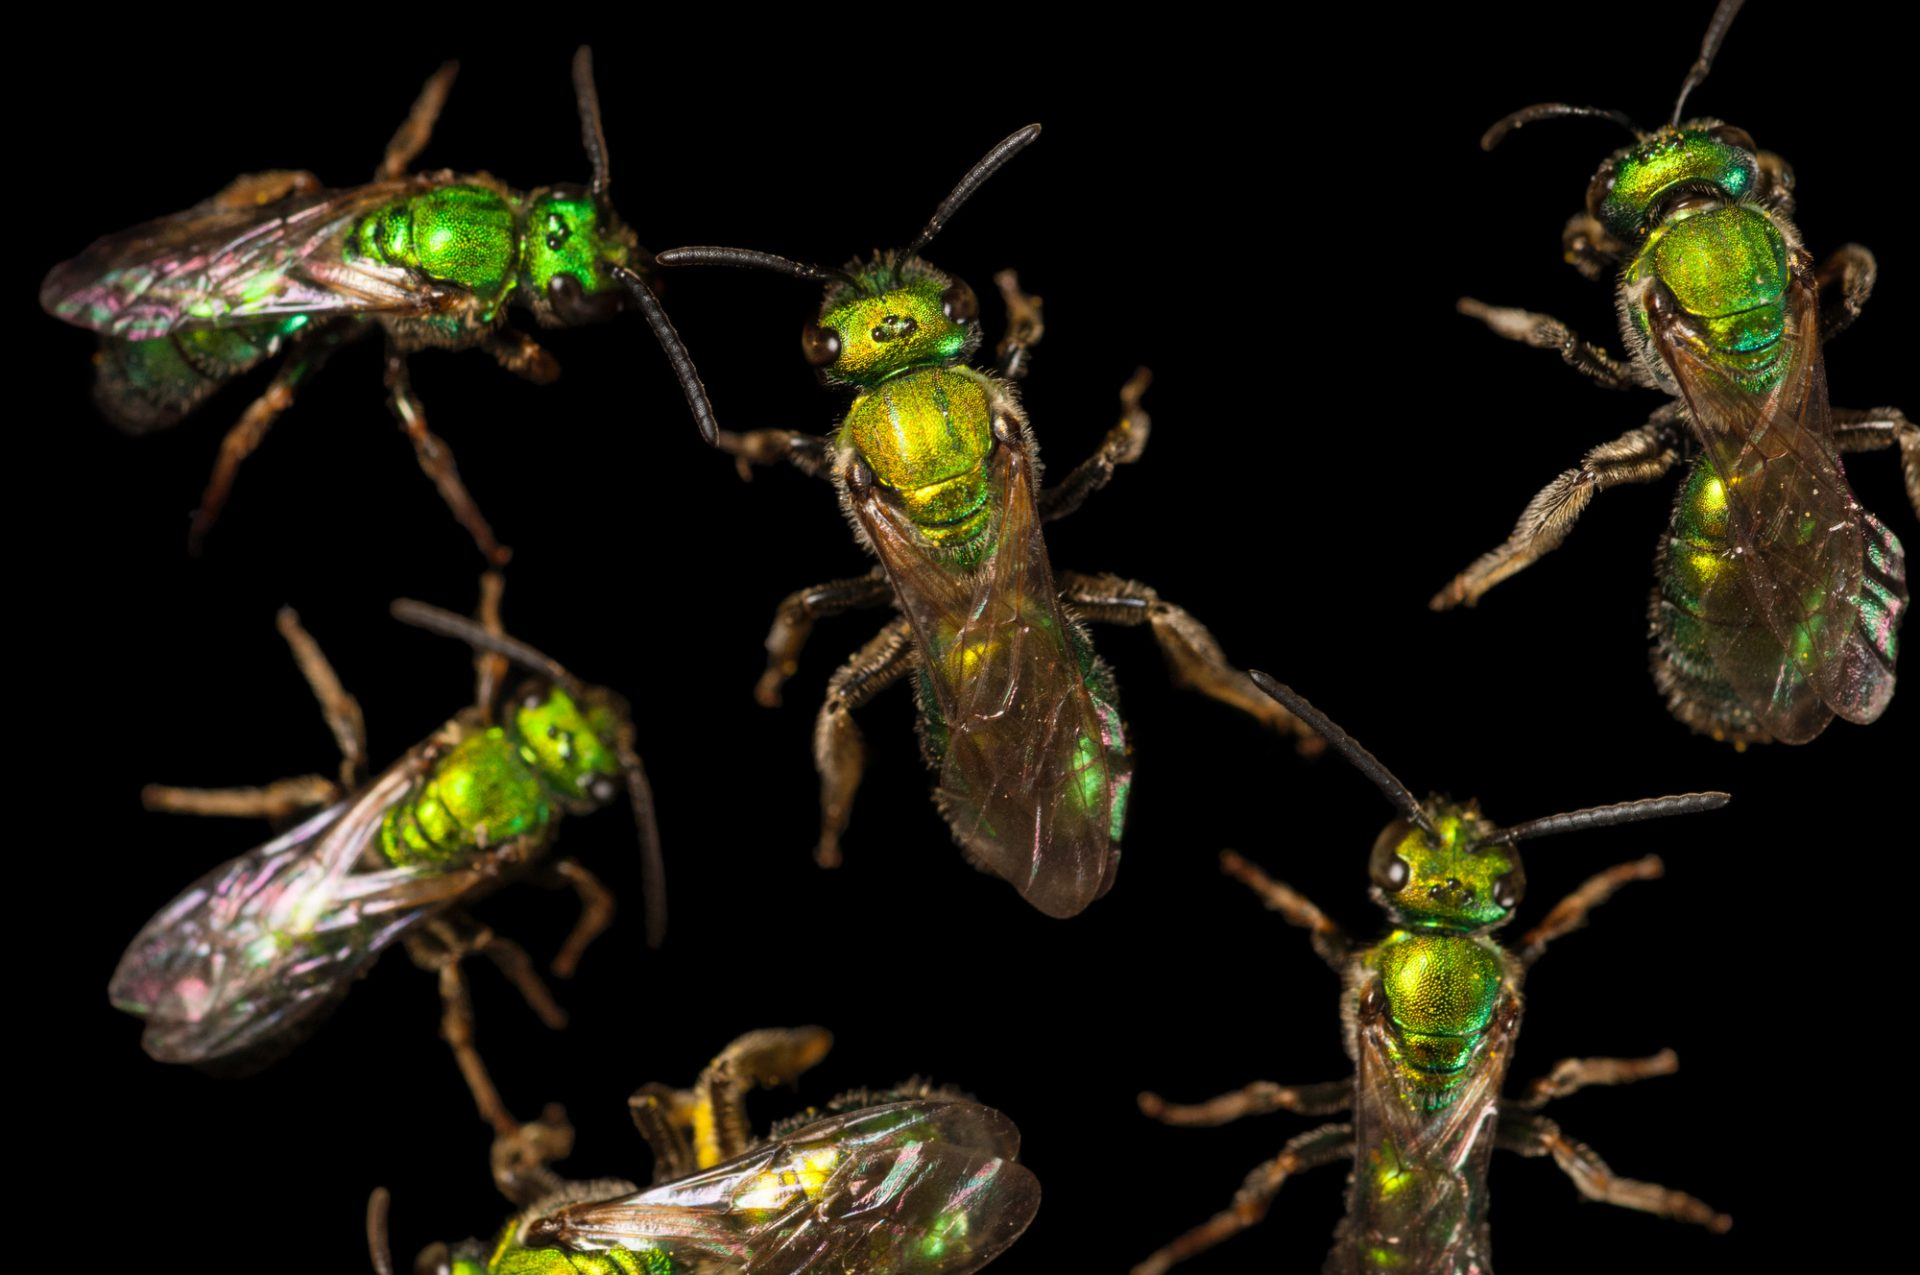 A group of Augochlorine green sweat bees (Augochlorirni) photographed at a studio in Lincoln, NE.